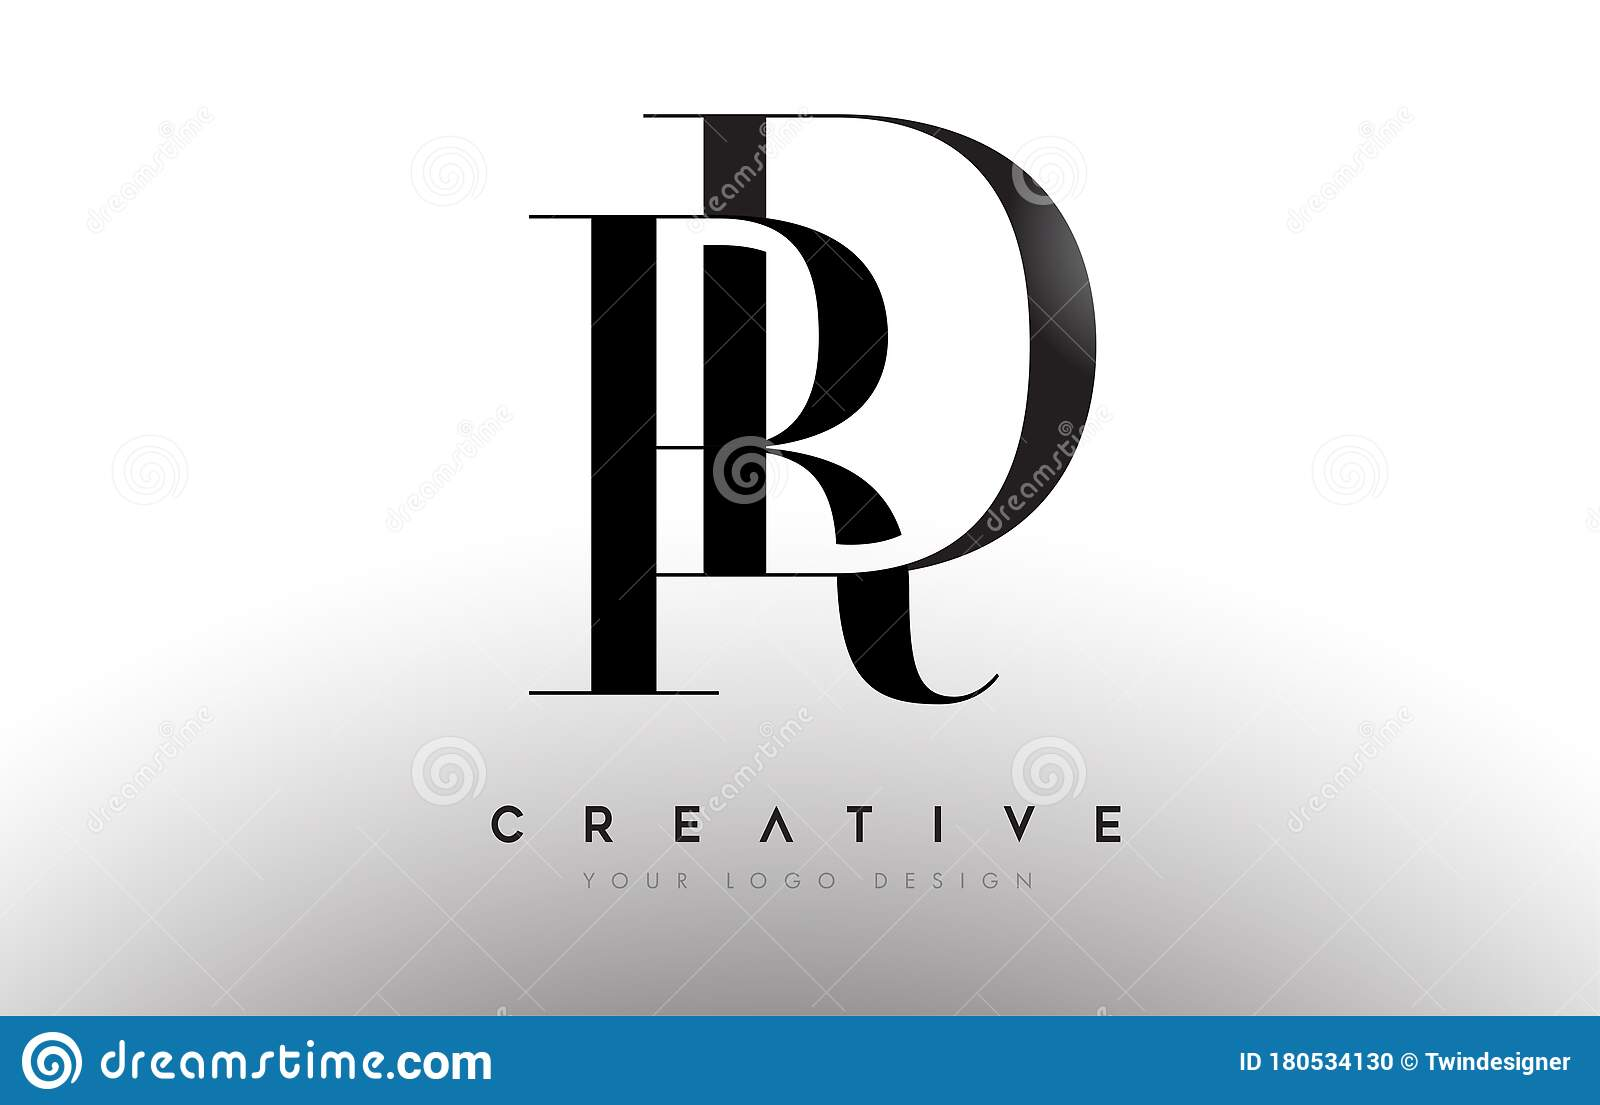 Dr Rd Letter Design Logo Logotype Icon Concept With Serif Font And Classic Elegant Style Look Vector Stock Vector Illustration Of Identity Idea 180534130